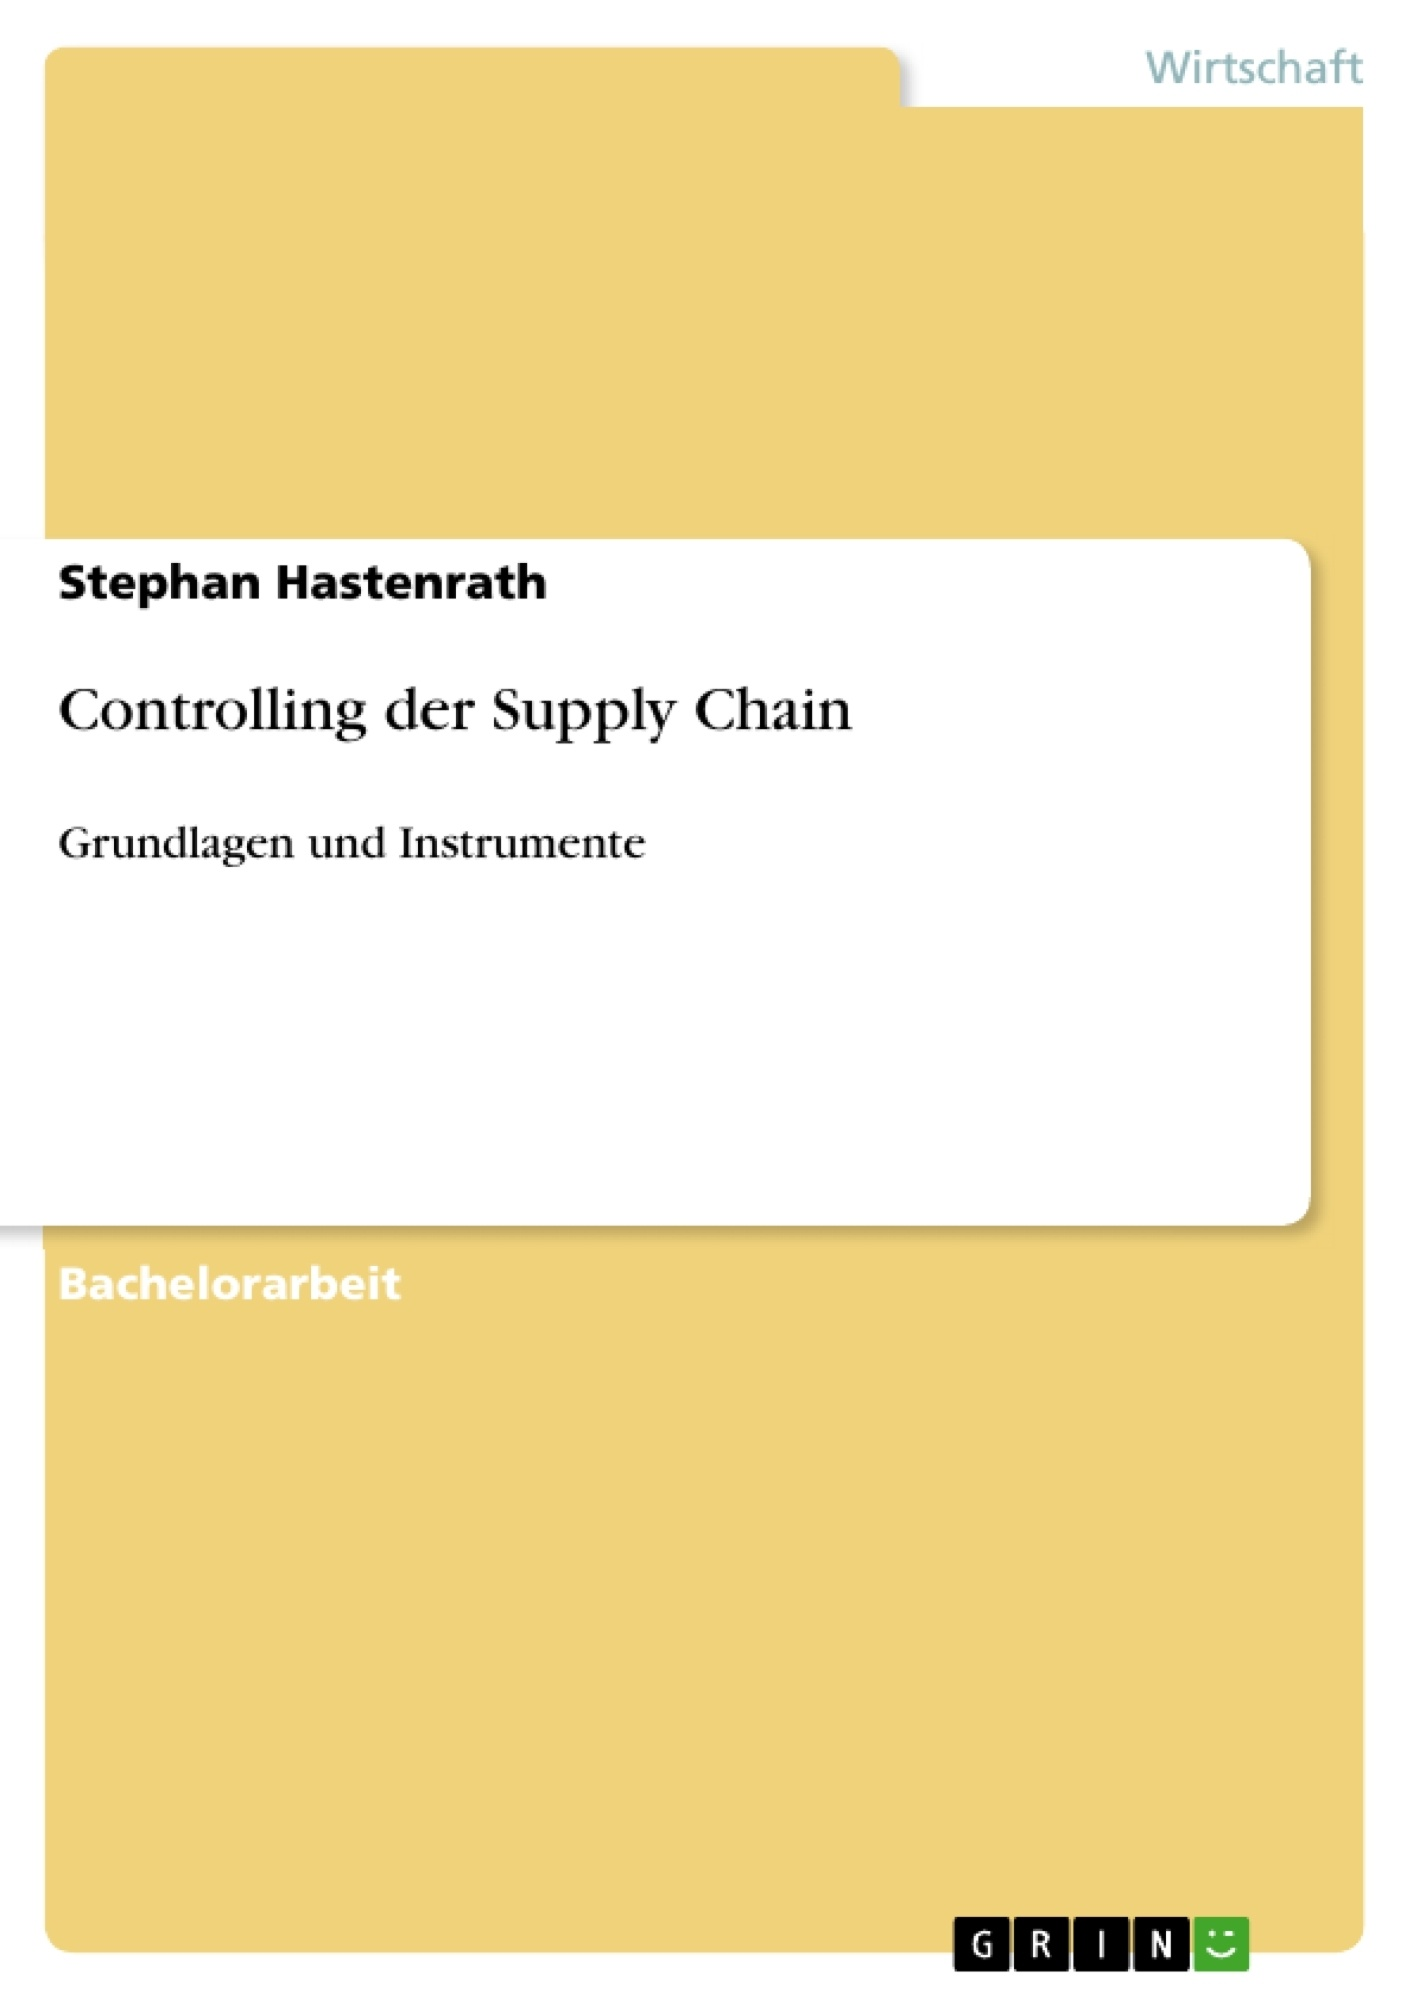 Titel: Controlling der Supply Chain